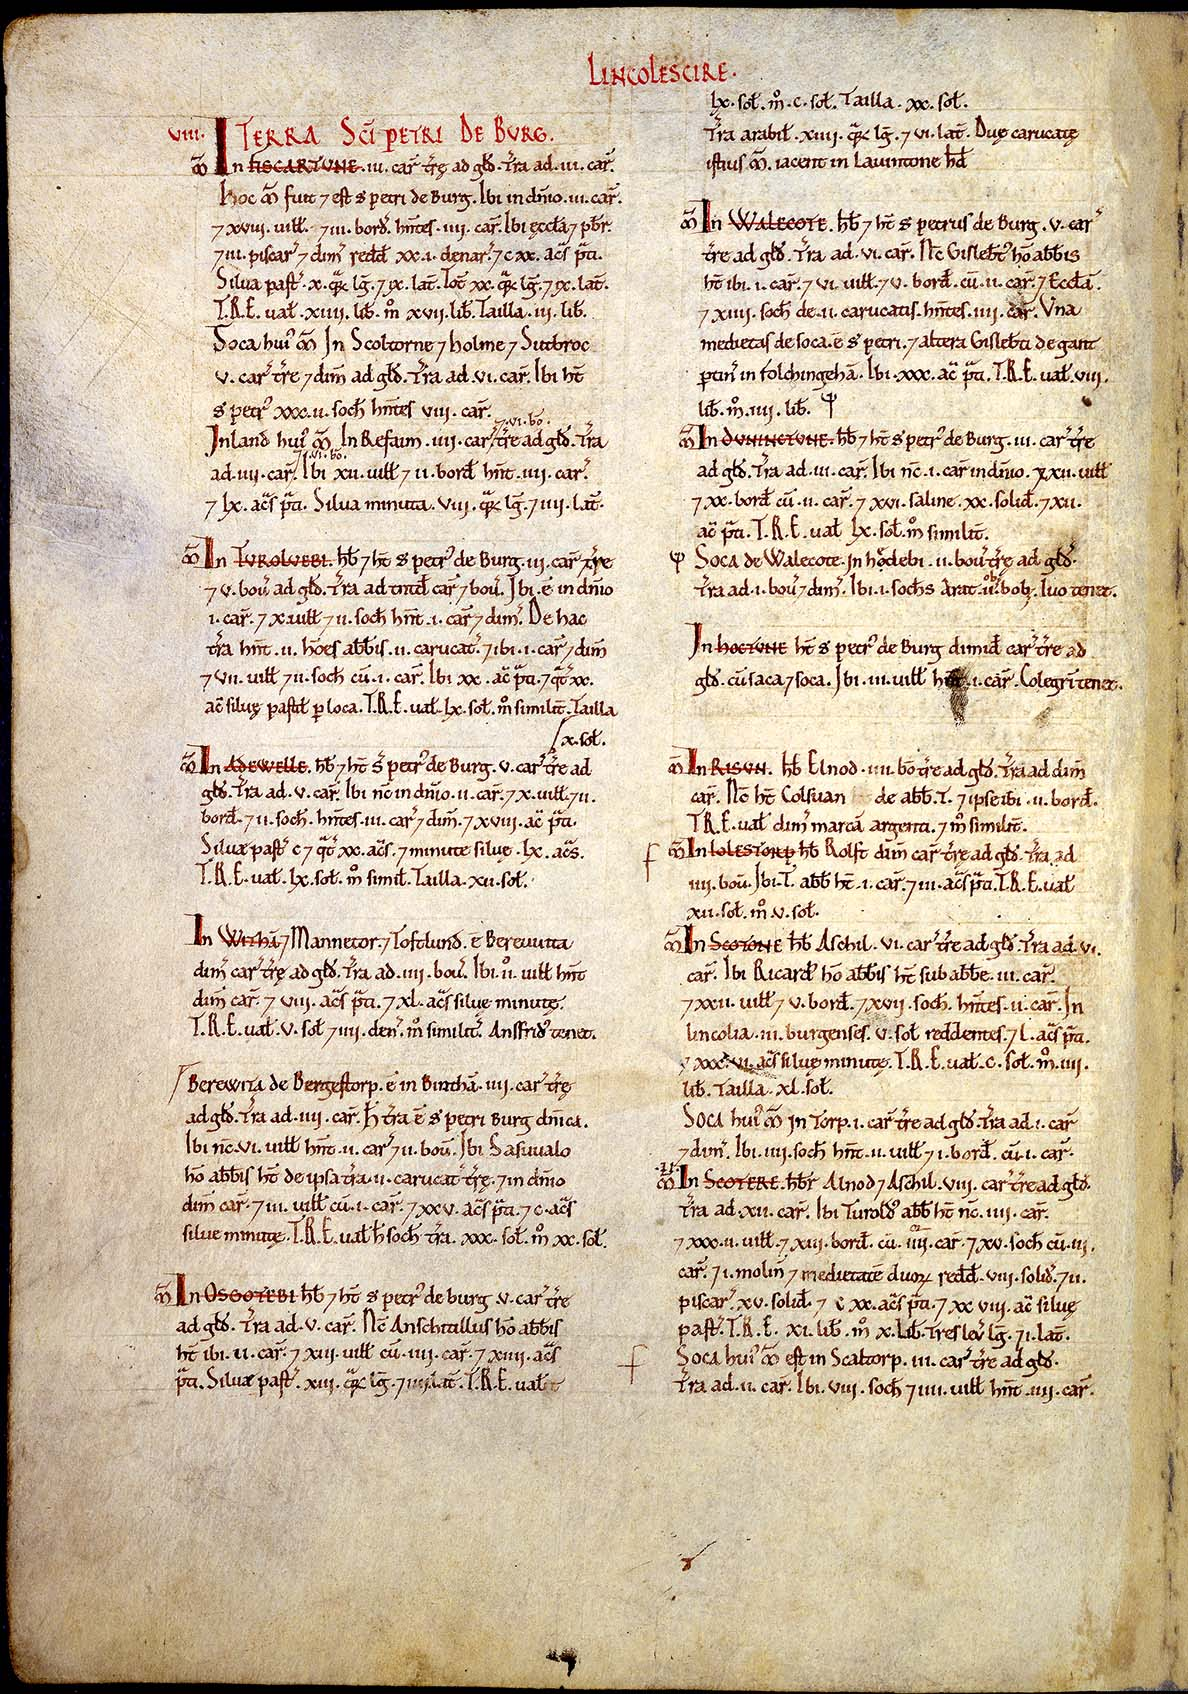 a photograph of a page of the Domesday Book with the word Lincolscire in red at the top